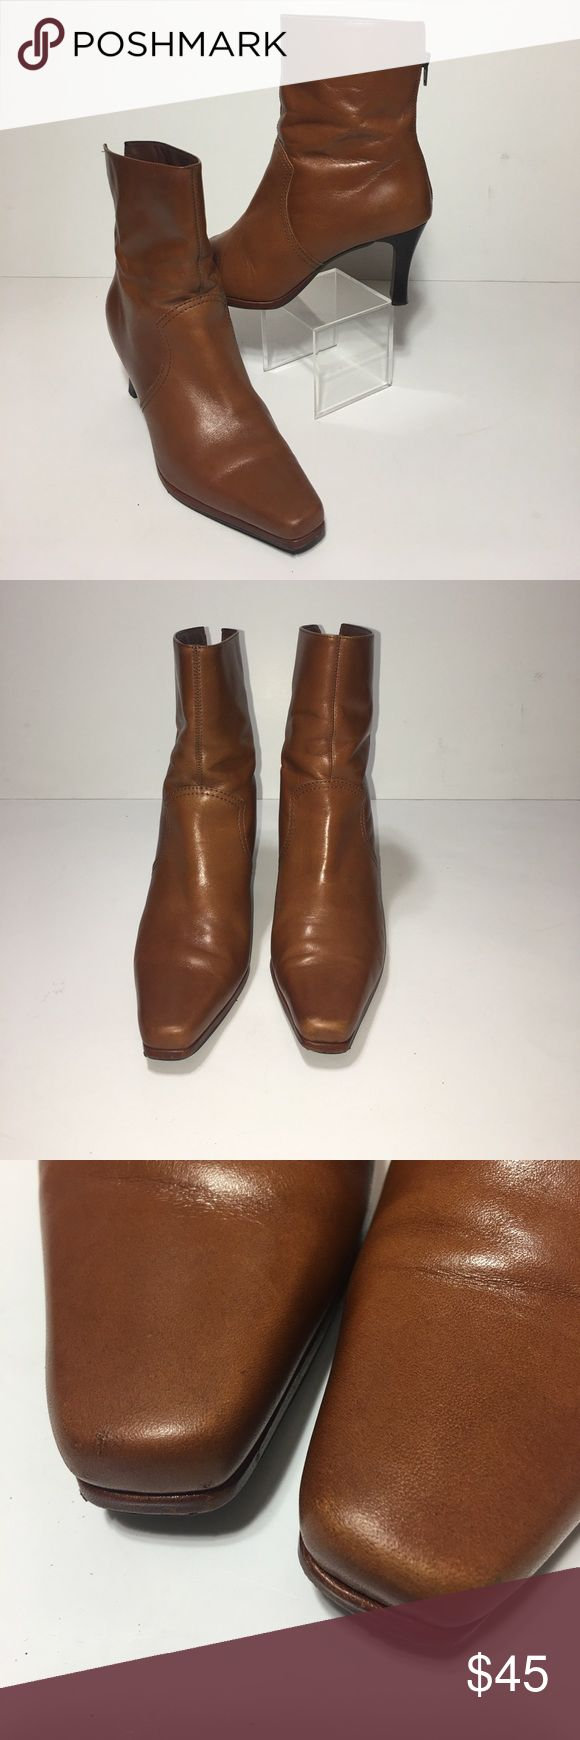 Unisa 'Vulcan' Camel Colored Zip Boot •Sz 7 Leather upper zip up boots • Beautiful Camel color • Great shape • No scuffs to leather Unisa Shoes Ankle Boots & Booties